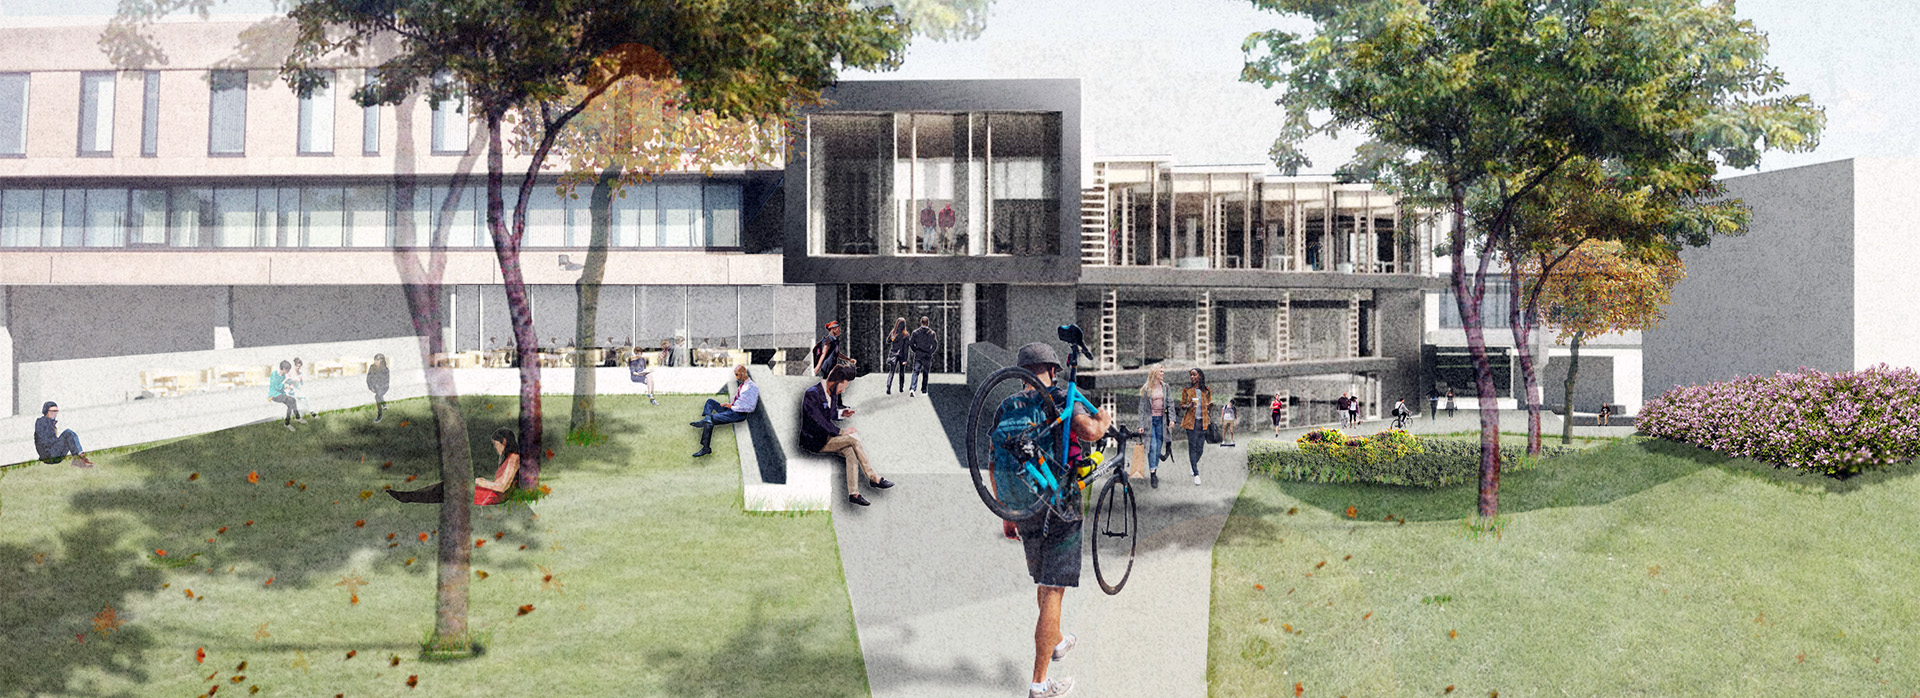 An artist's impression of how Campus Central will look when completed